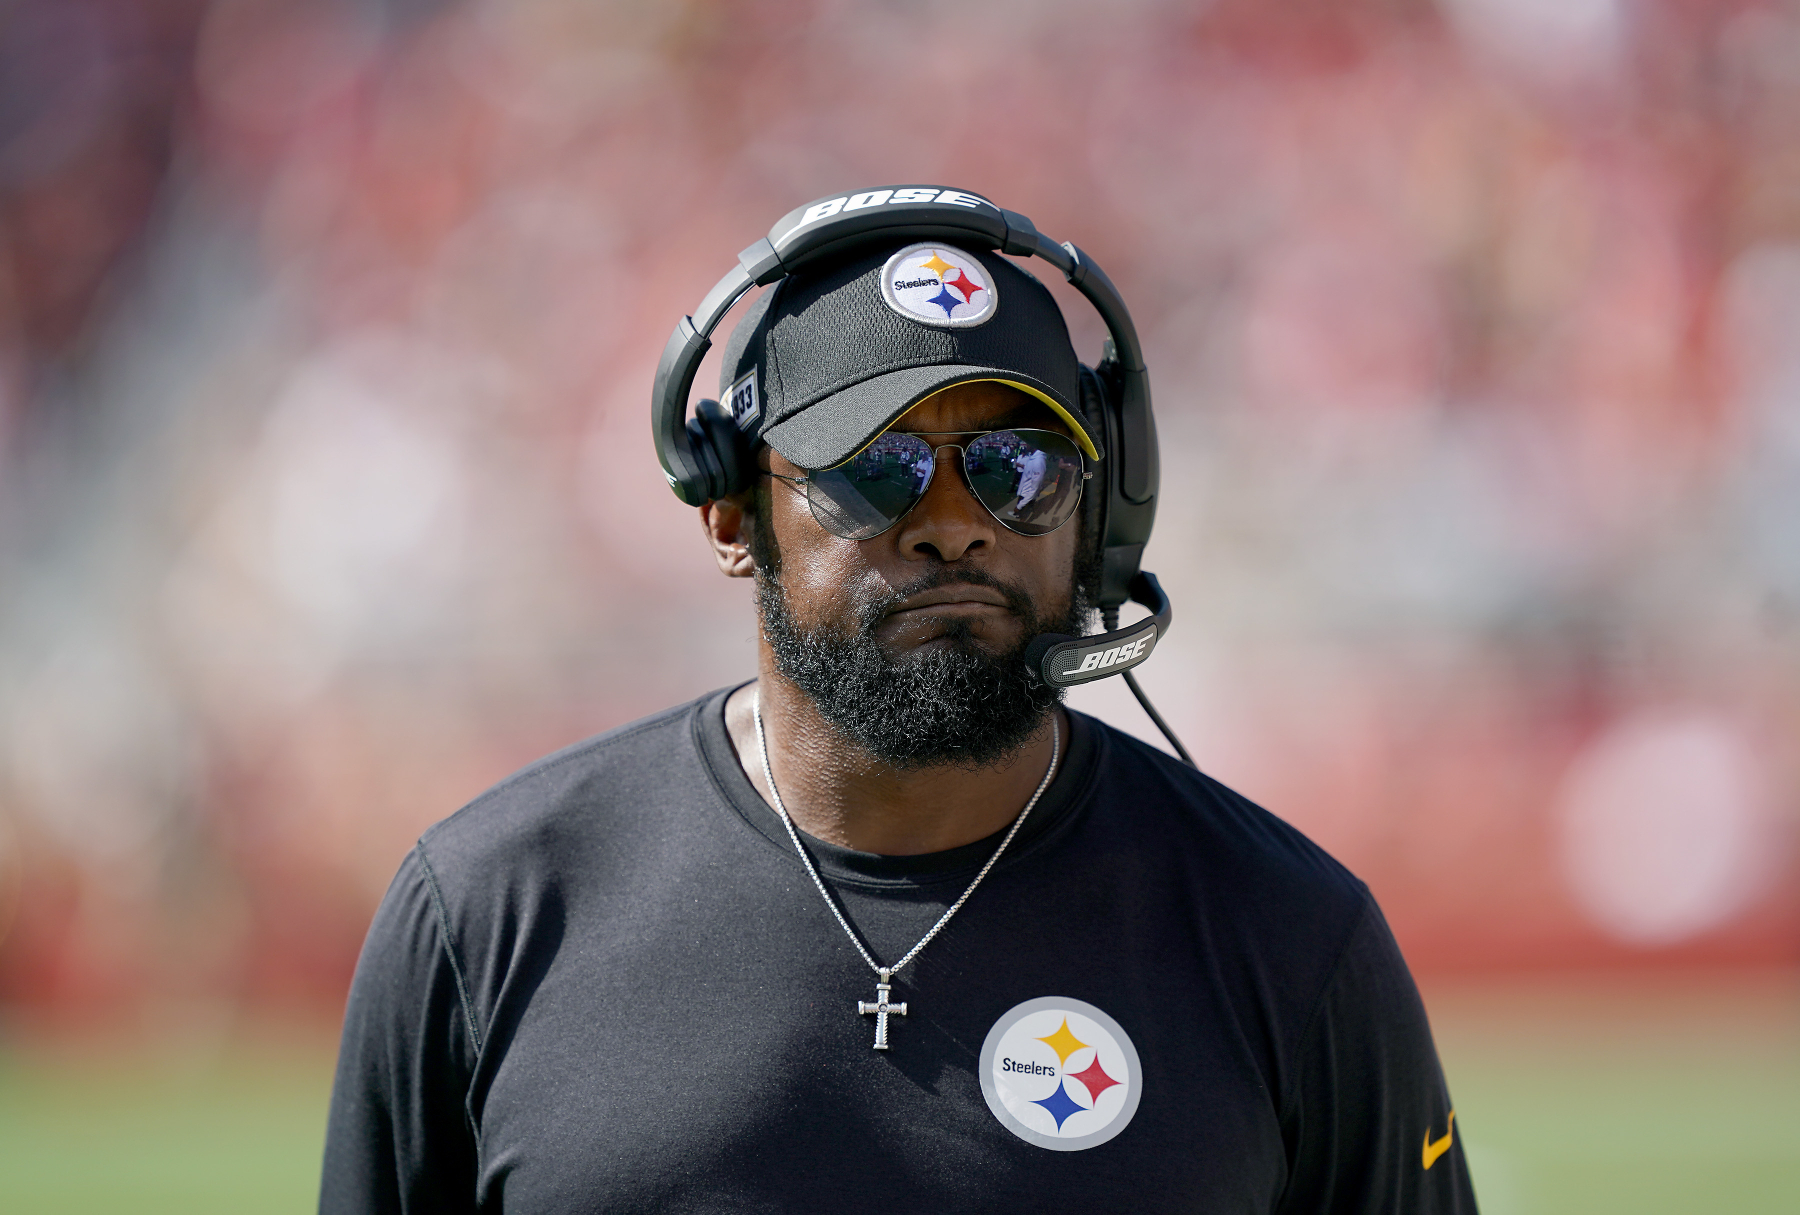 Mike Tomlin has become one of the best head coaches in the NFL with the Pittsburgh Steelers. Did Tomlin ever play in the NFL?